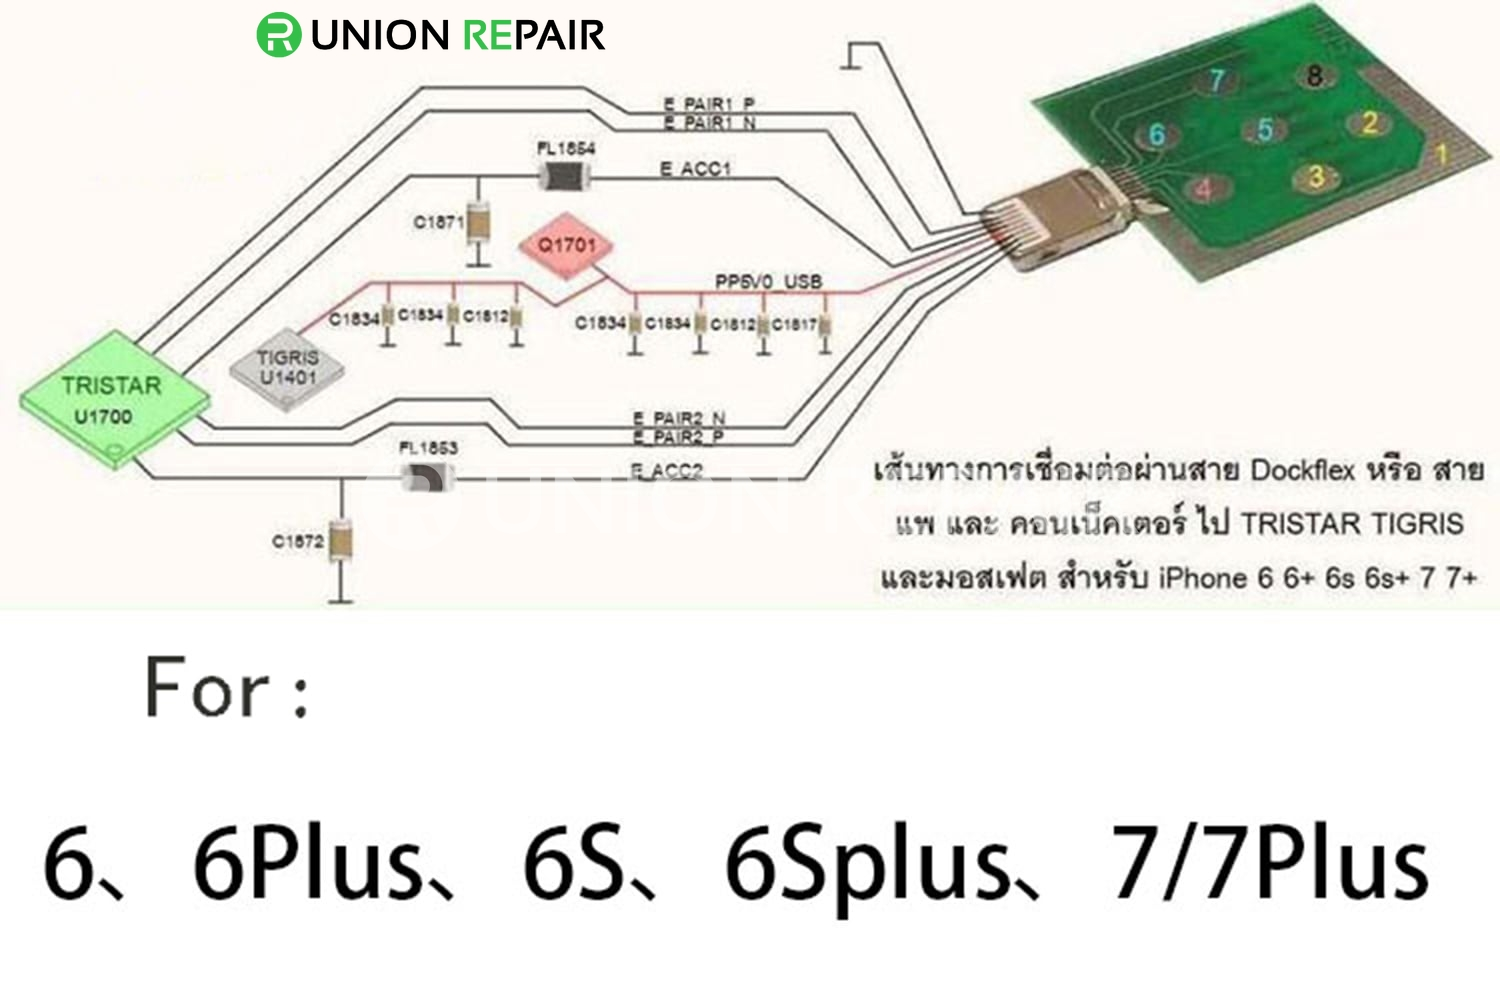 Iphone 4 Dock Wiring Diagram Diagrams Cord Wire Schematics Phone Battery